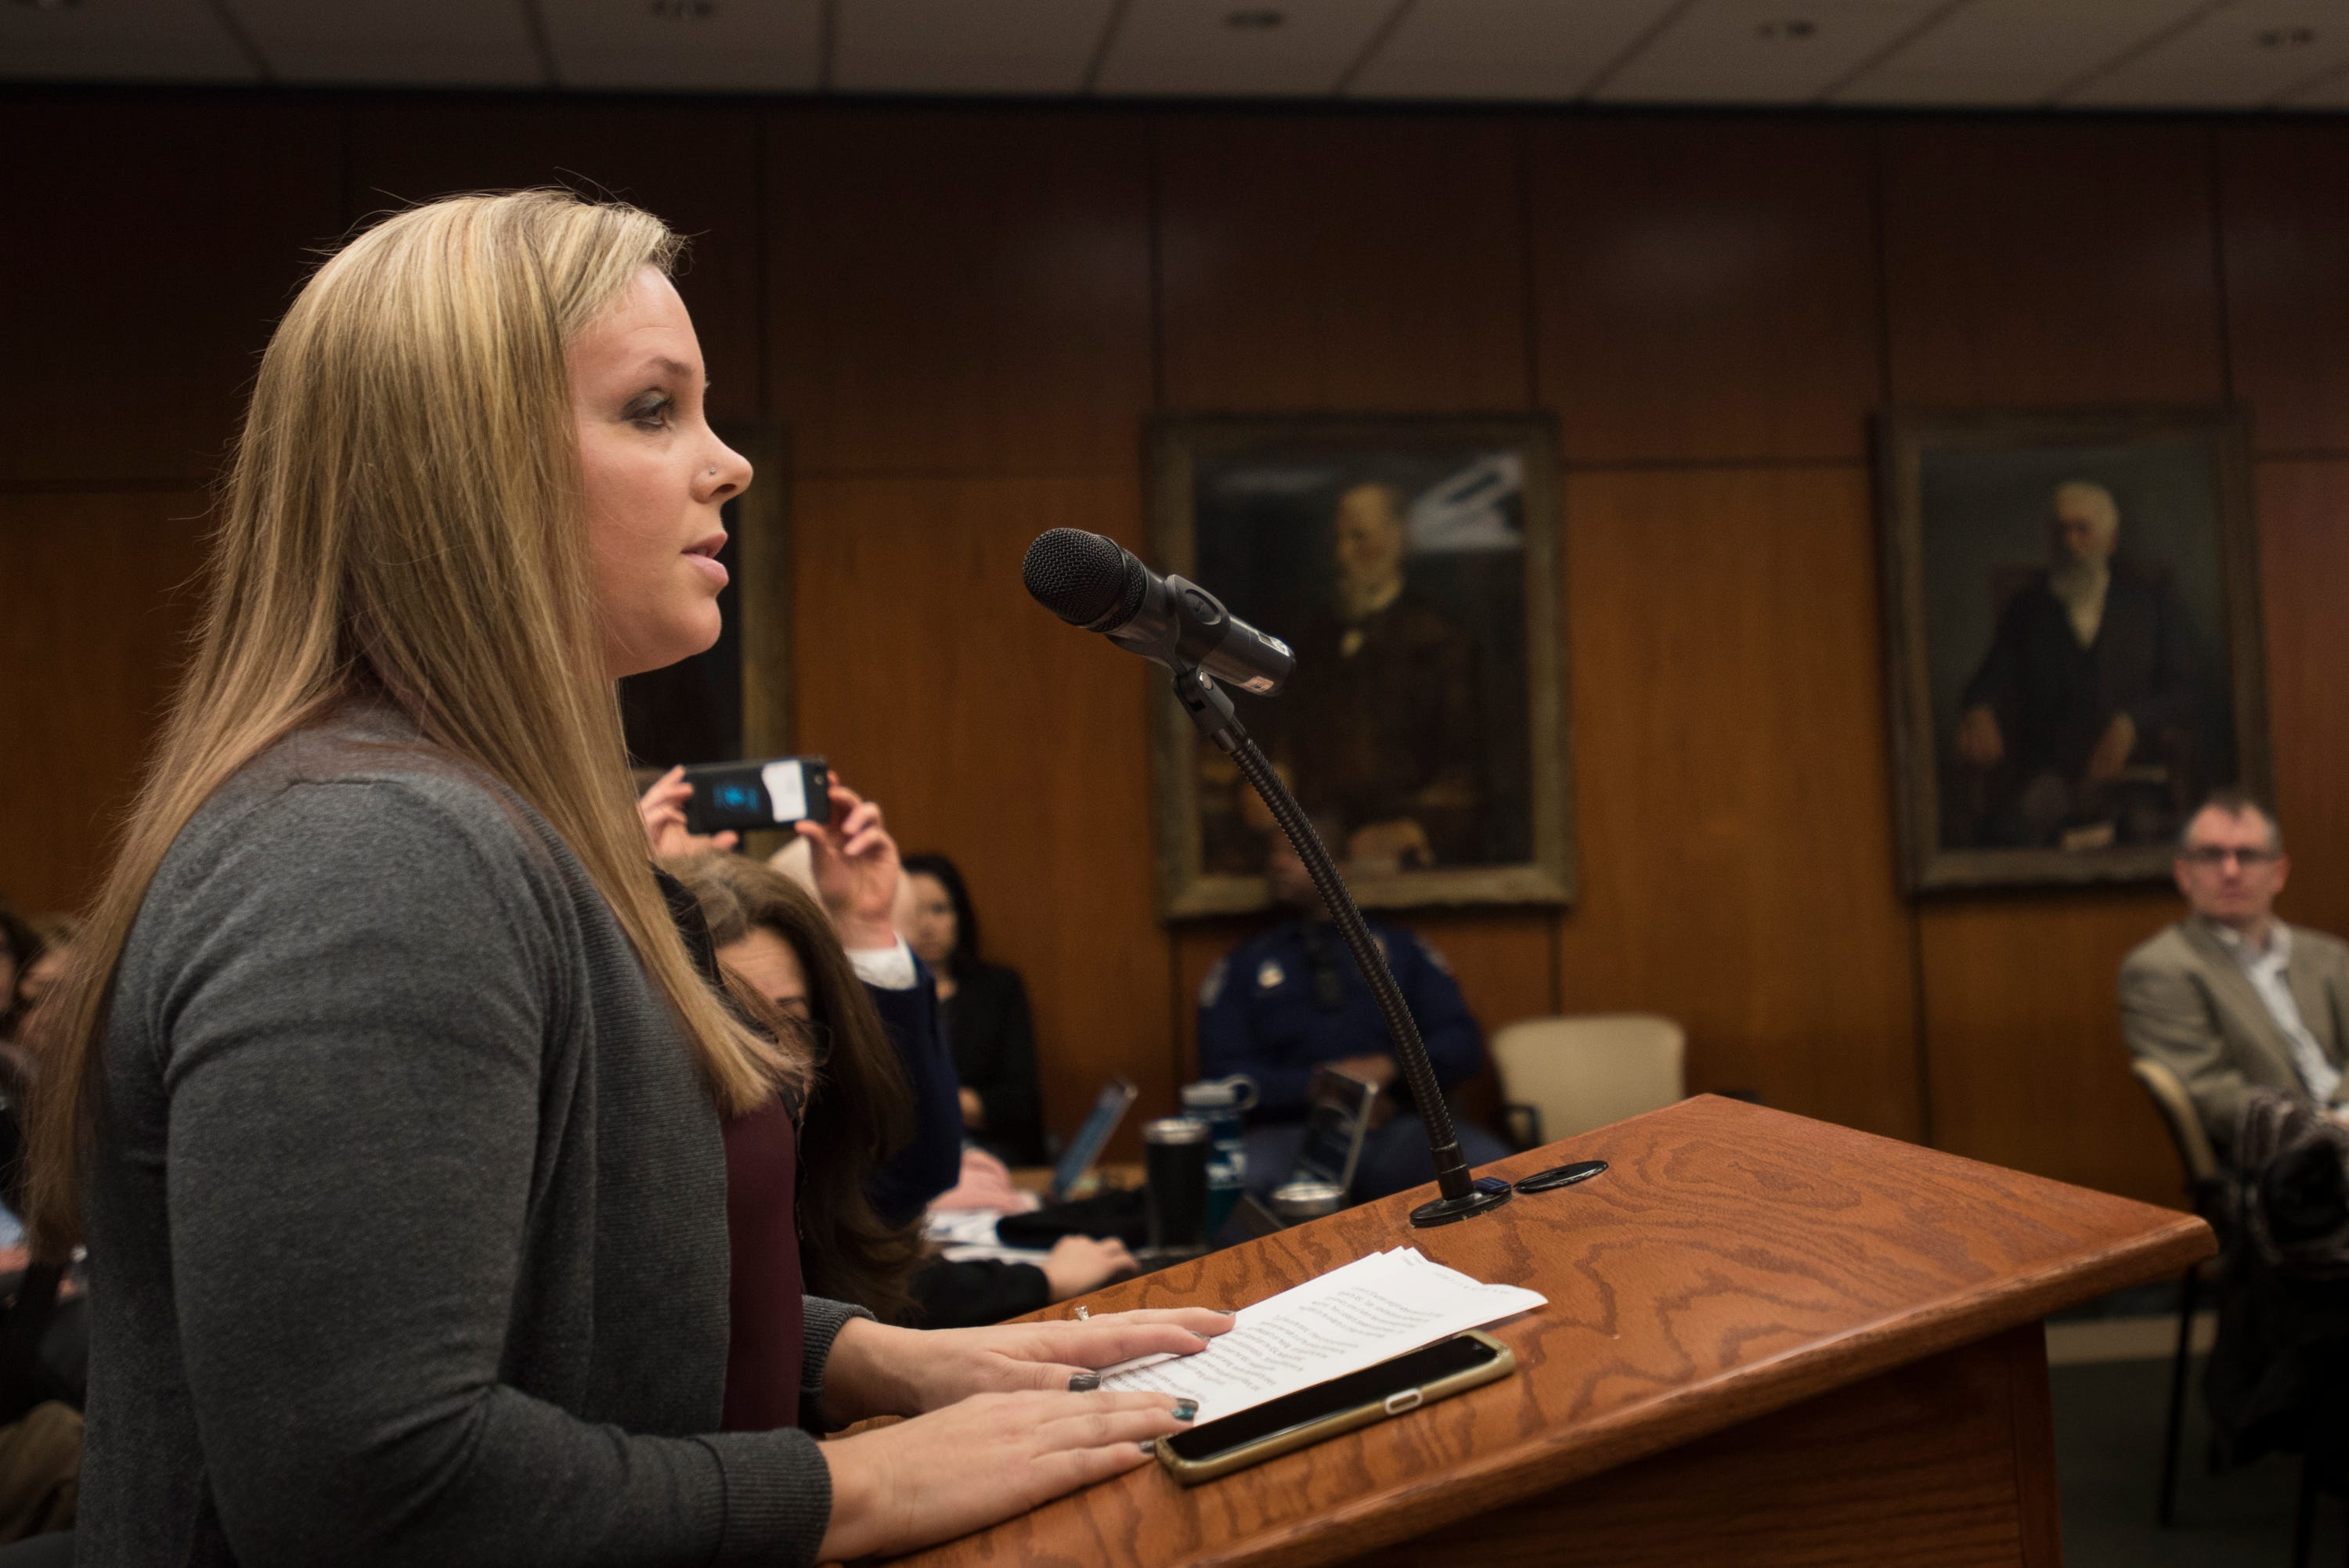 Former MSU alumna and Nassar survivor Nicole Casady addresses the MSU Board of Trustees Friday, Feb. 15, 2019. Casady is among 110 women suing MSU in a second-wave of Nassar-related lawsuits.